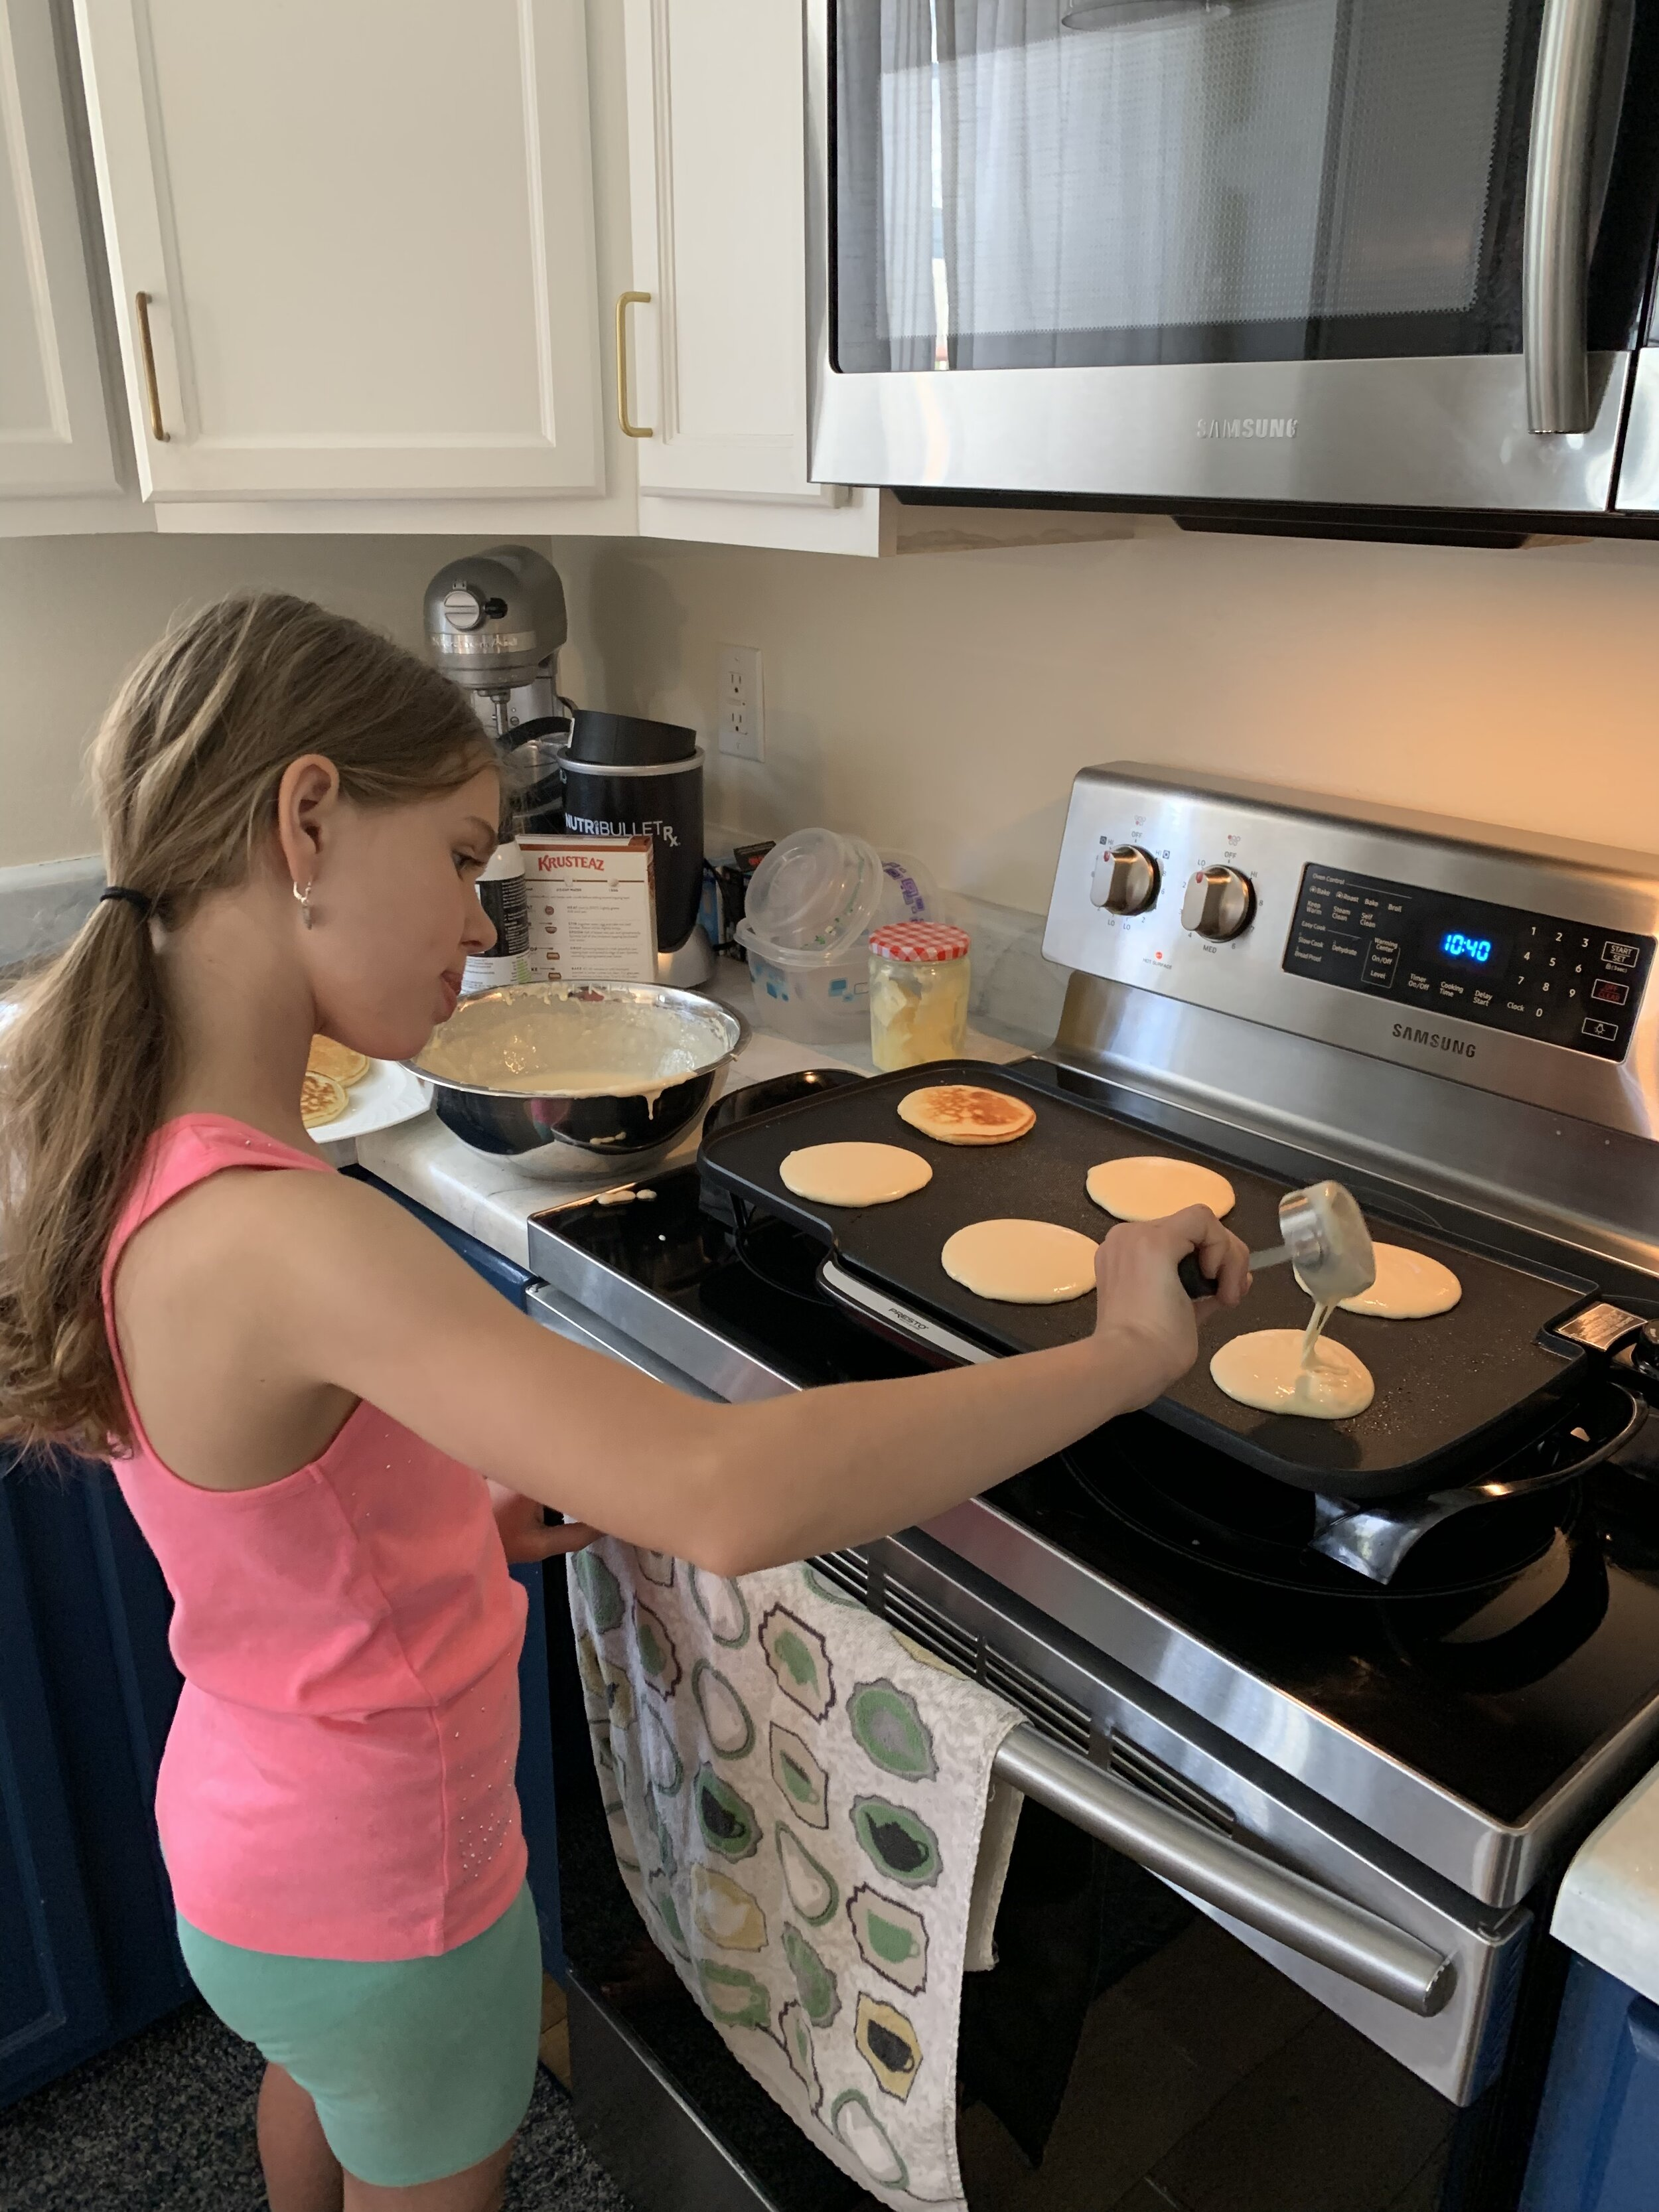 I love waking up to the smell of her amazing, made from scratch pancakes. They are the best!